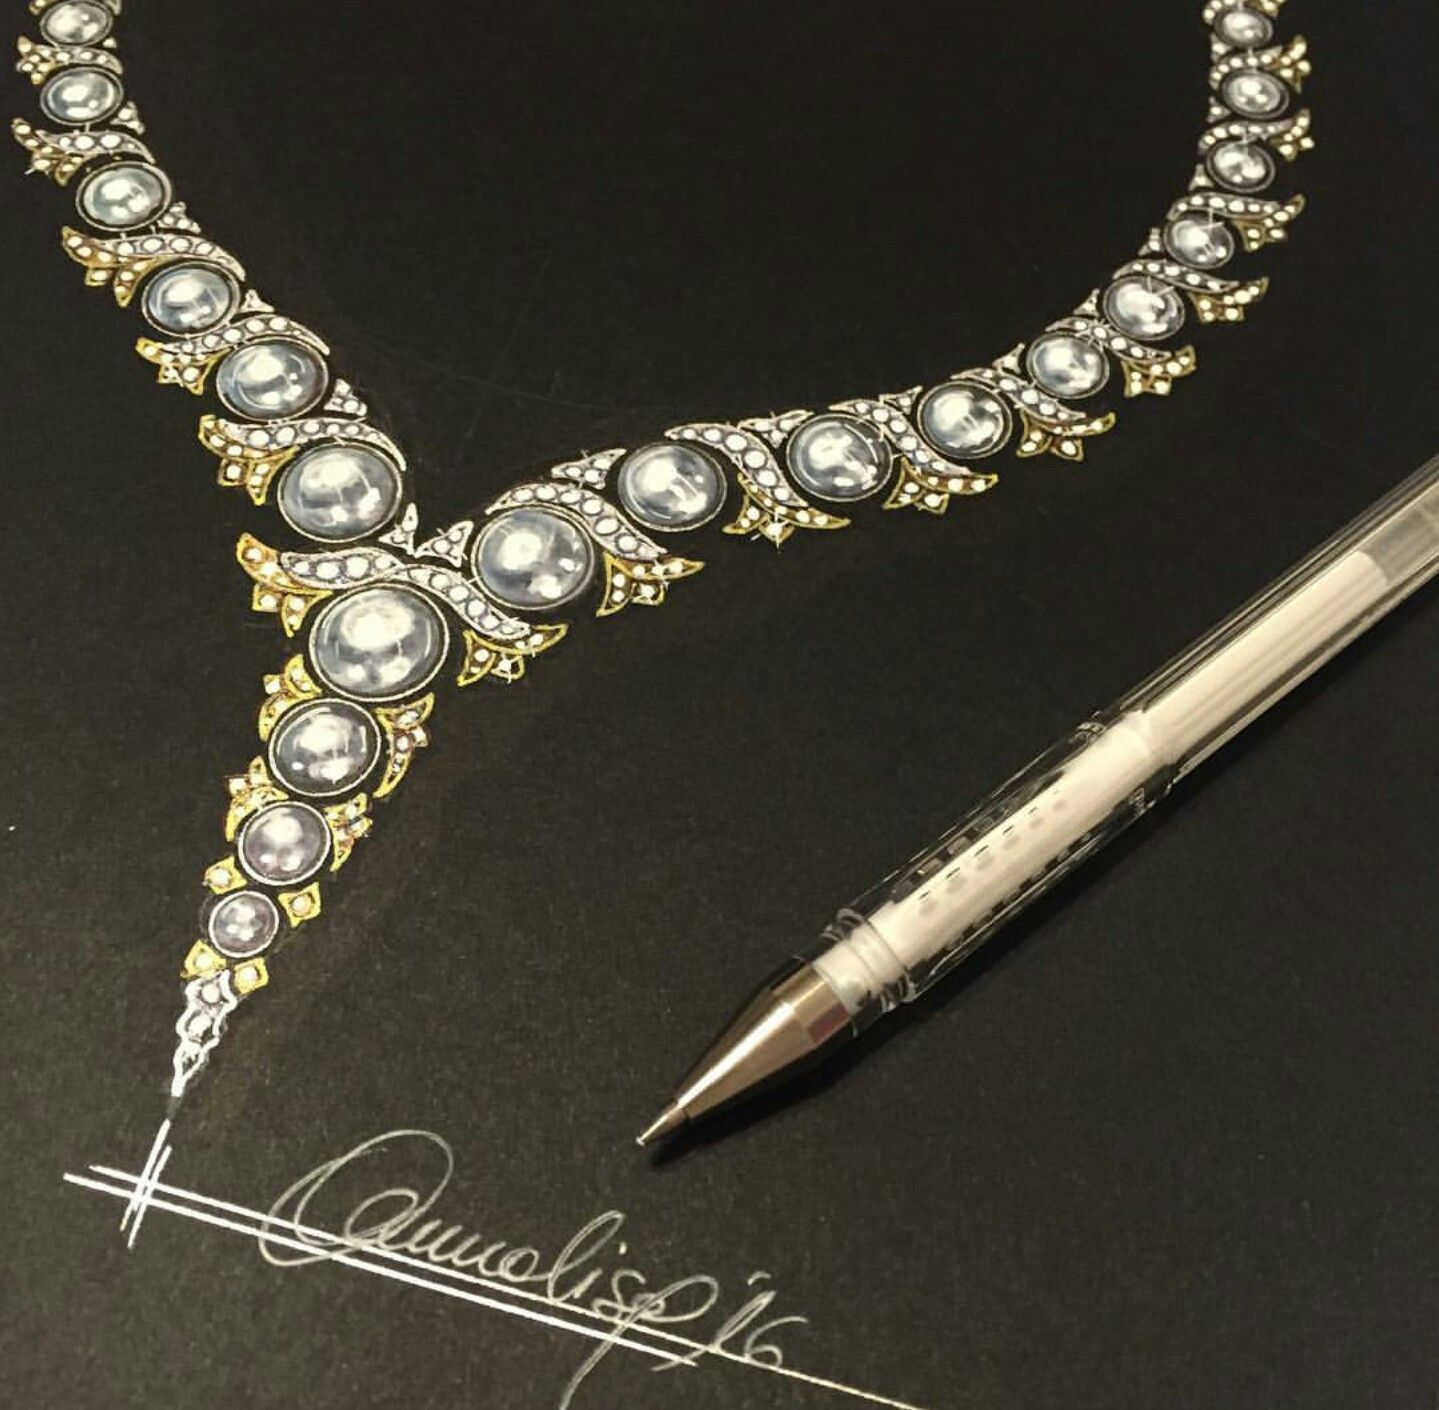 Pin by Elena lavrenova on Sketches of jewelry | Pinterest ...